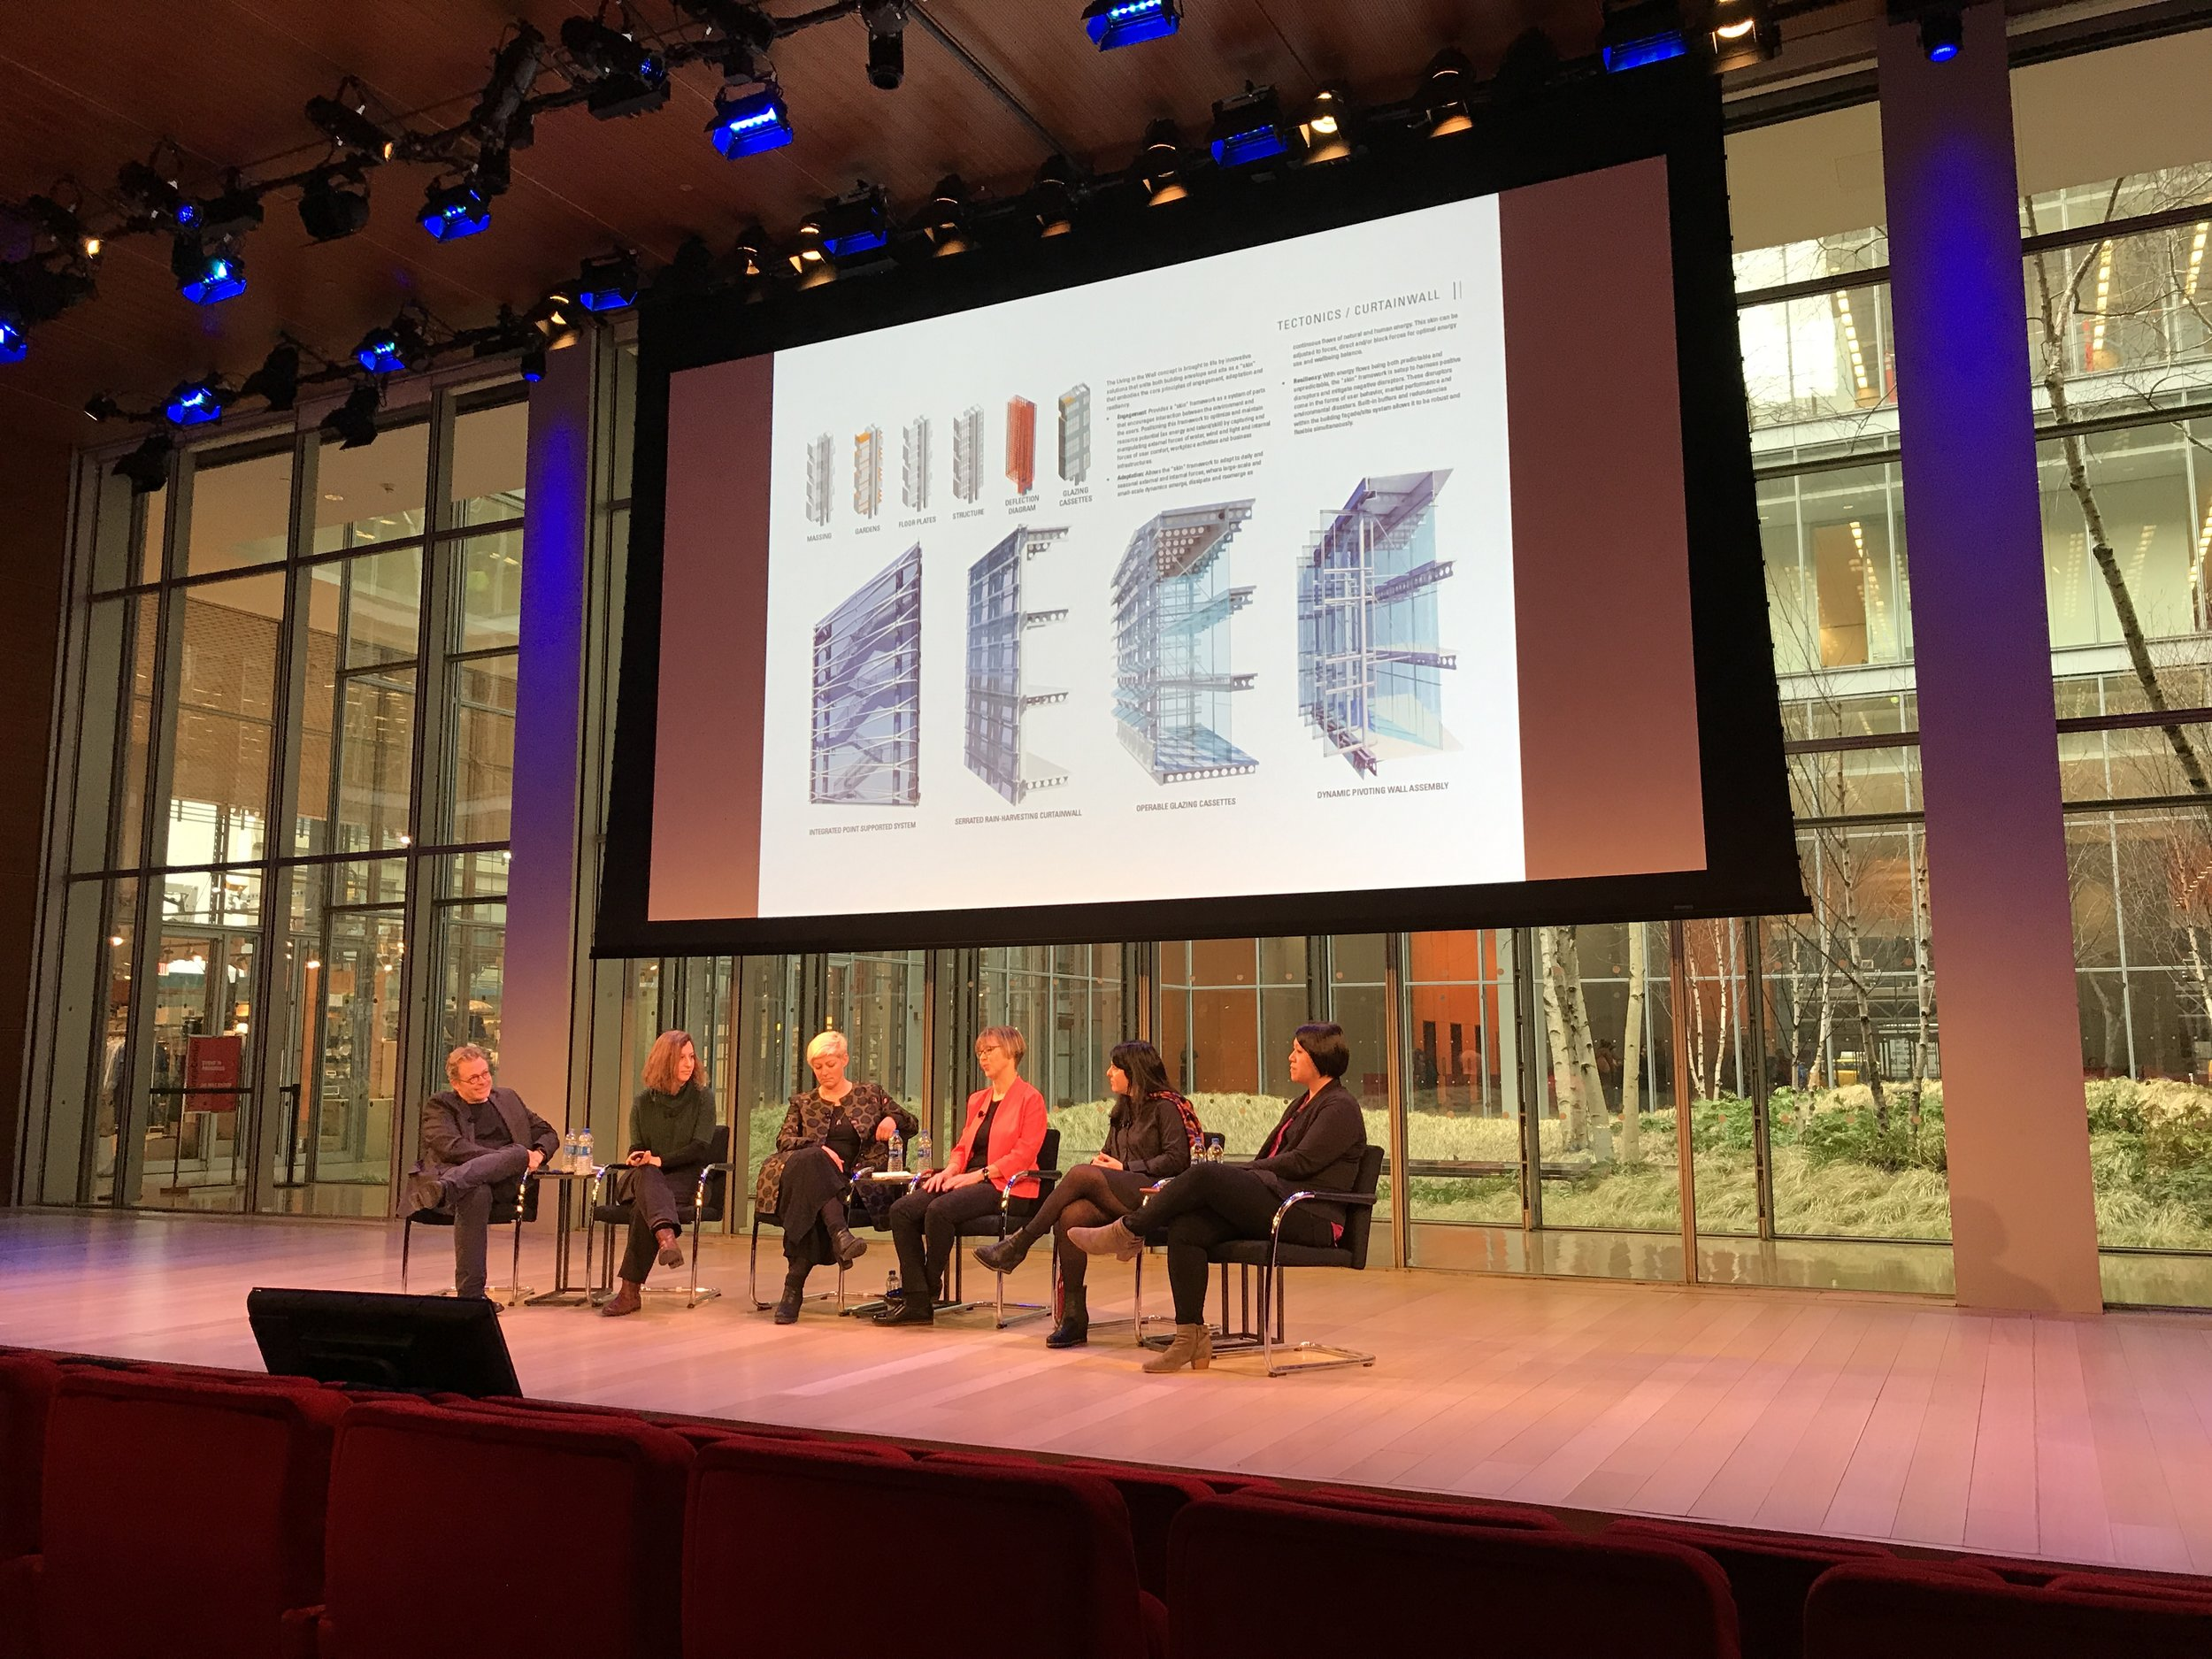 Ever fewer excuses to shut out nature? Vivian Loftness on panel in the auditorium at Renzo Piano's New York Times tower. A crisp projection, with daylight right behind.